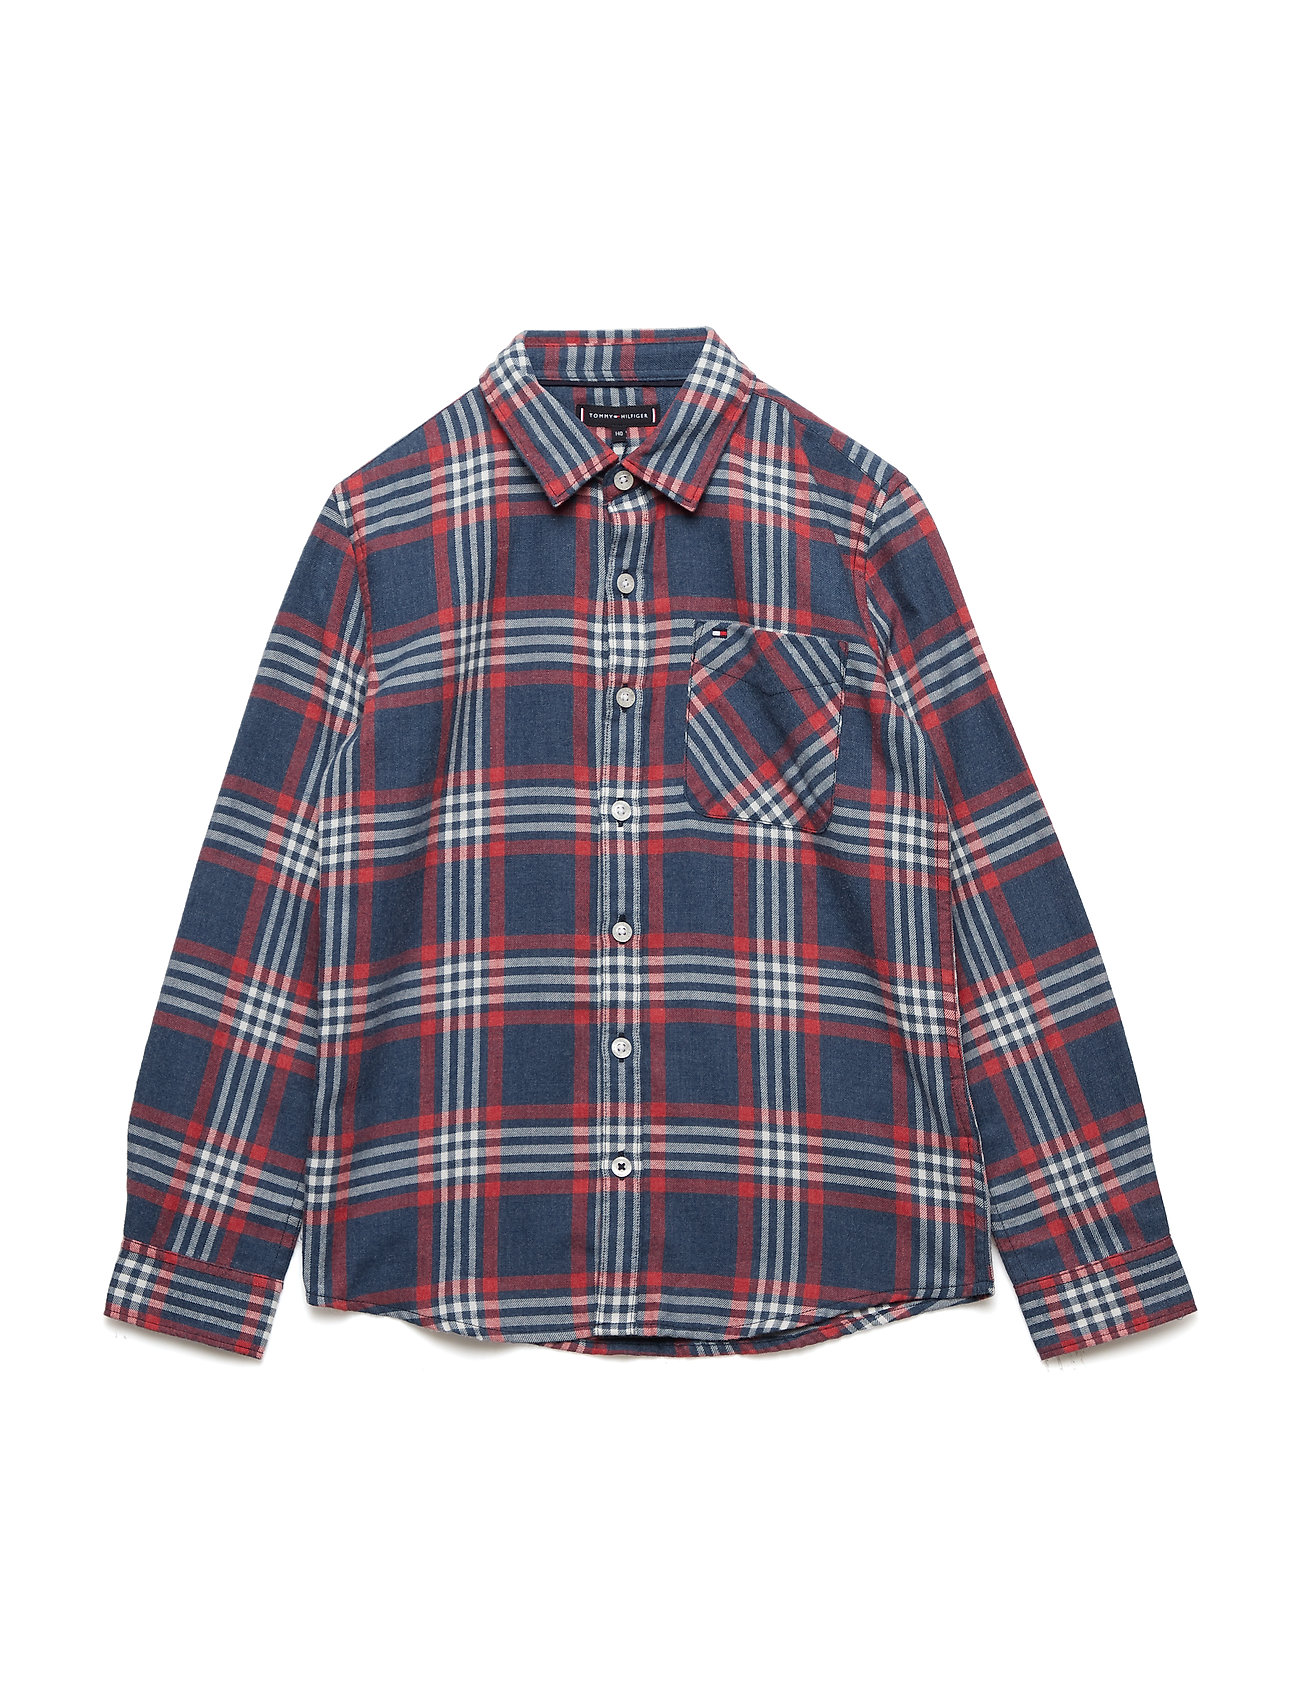 Tommy Hilfiger MULTICOLOR BRUSHED TWILL CHECK SHIRT L/S